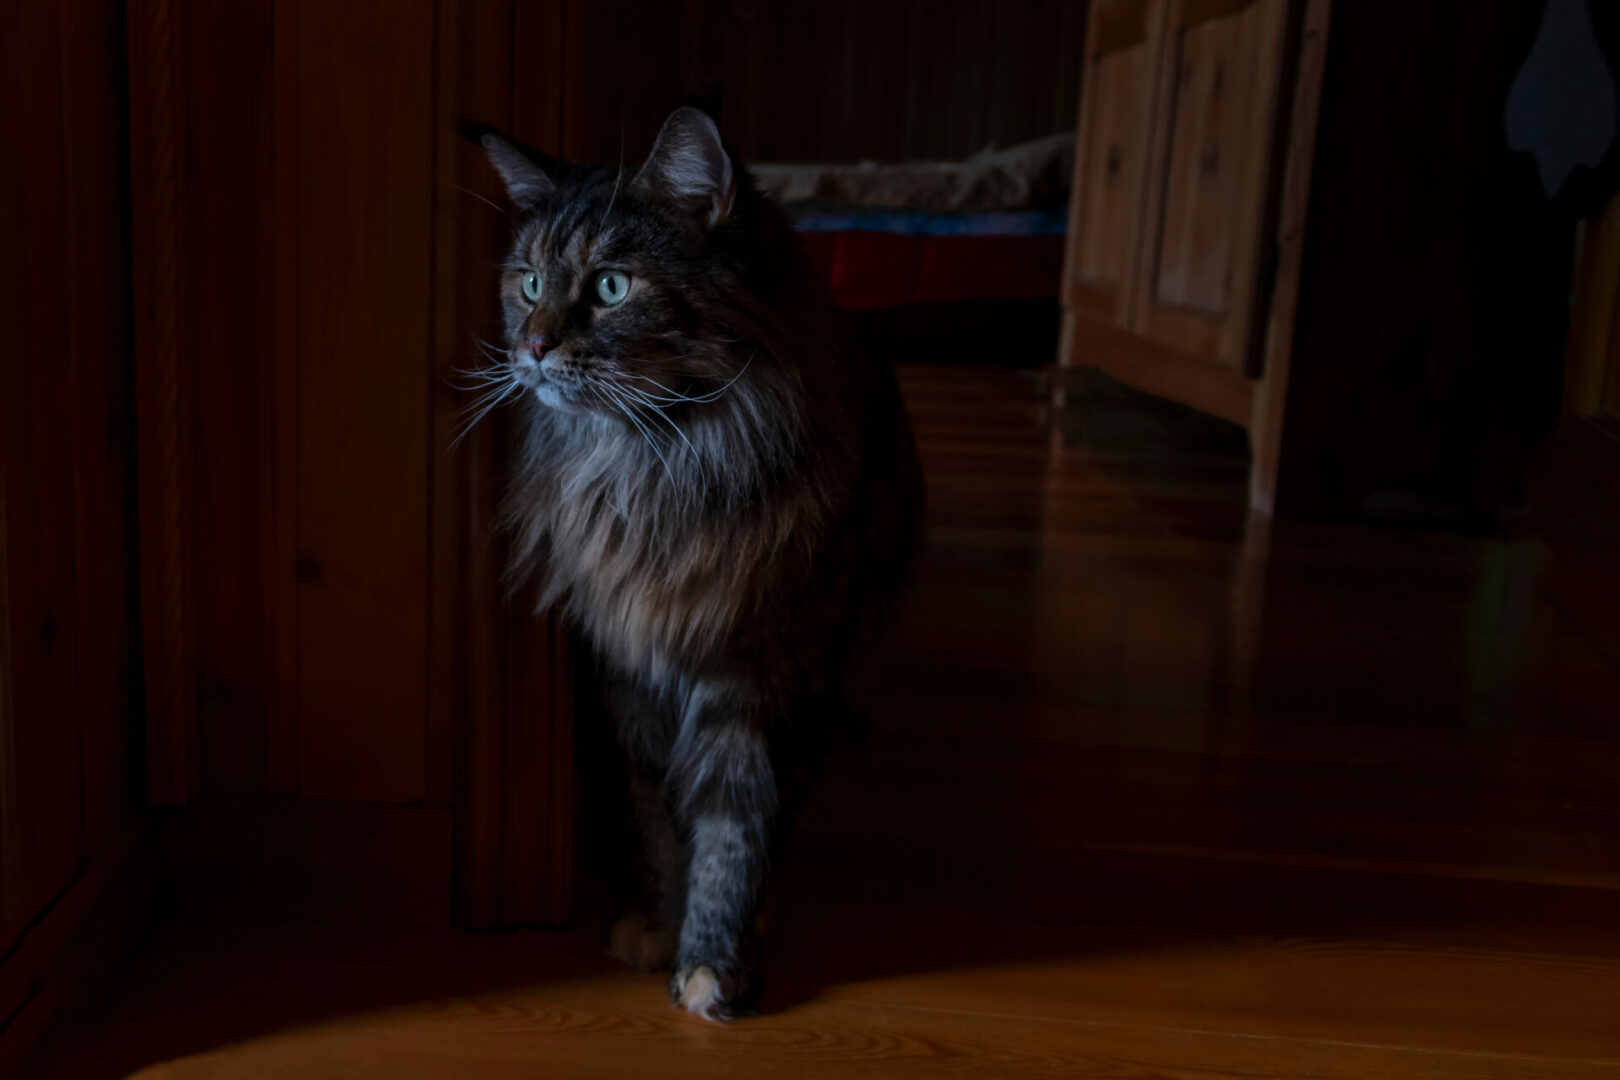 why do cats love the dark?